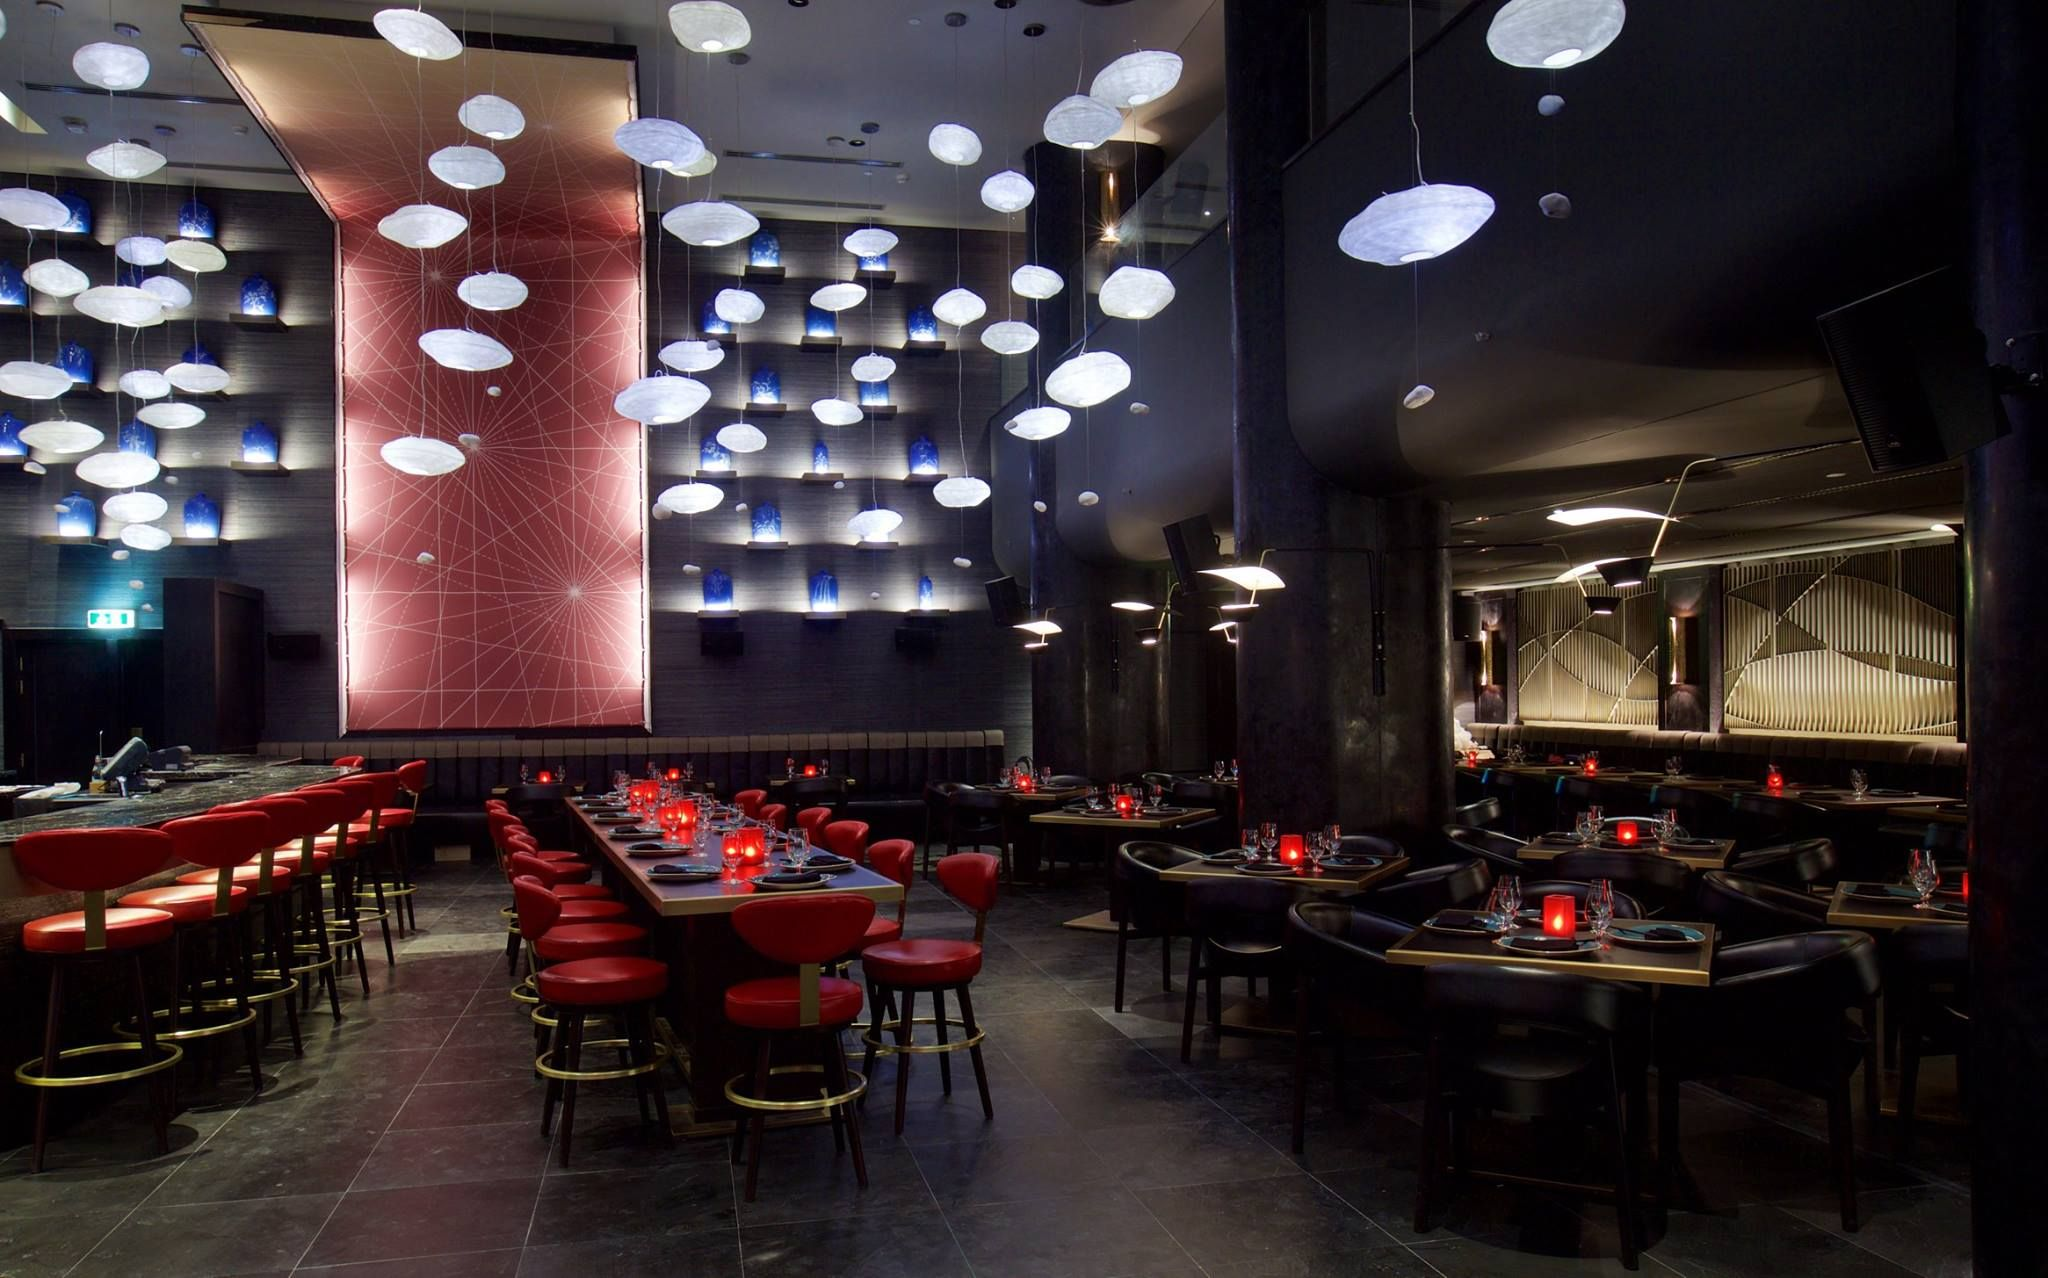 Trendsetters in eclectic Asian-inspired world cuisine, the internationally renowned China Grill now debuts at The Westin Dubai. Read More: http://bit.ly/1F3zjSk #chinagrilldubai #AsianRestaurant #Bar #Lounge #Dinner #Drinks #TheWestinDubai #Dubai #UAE